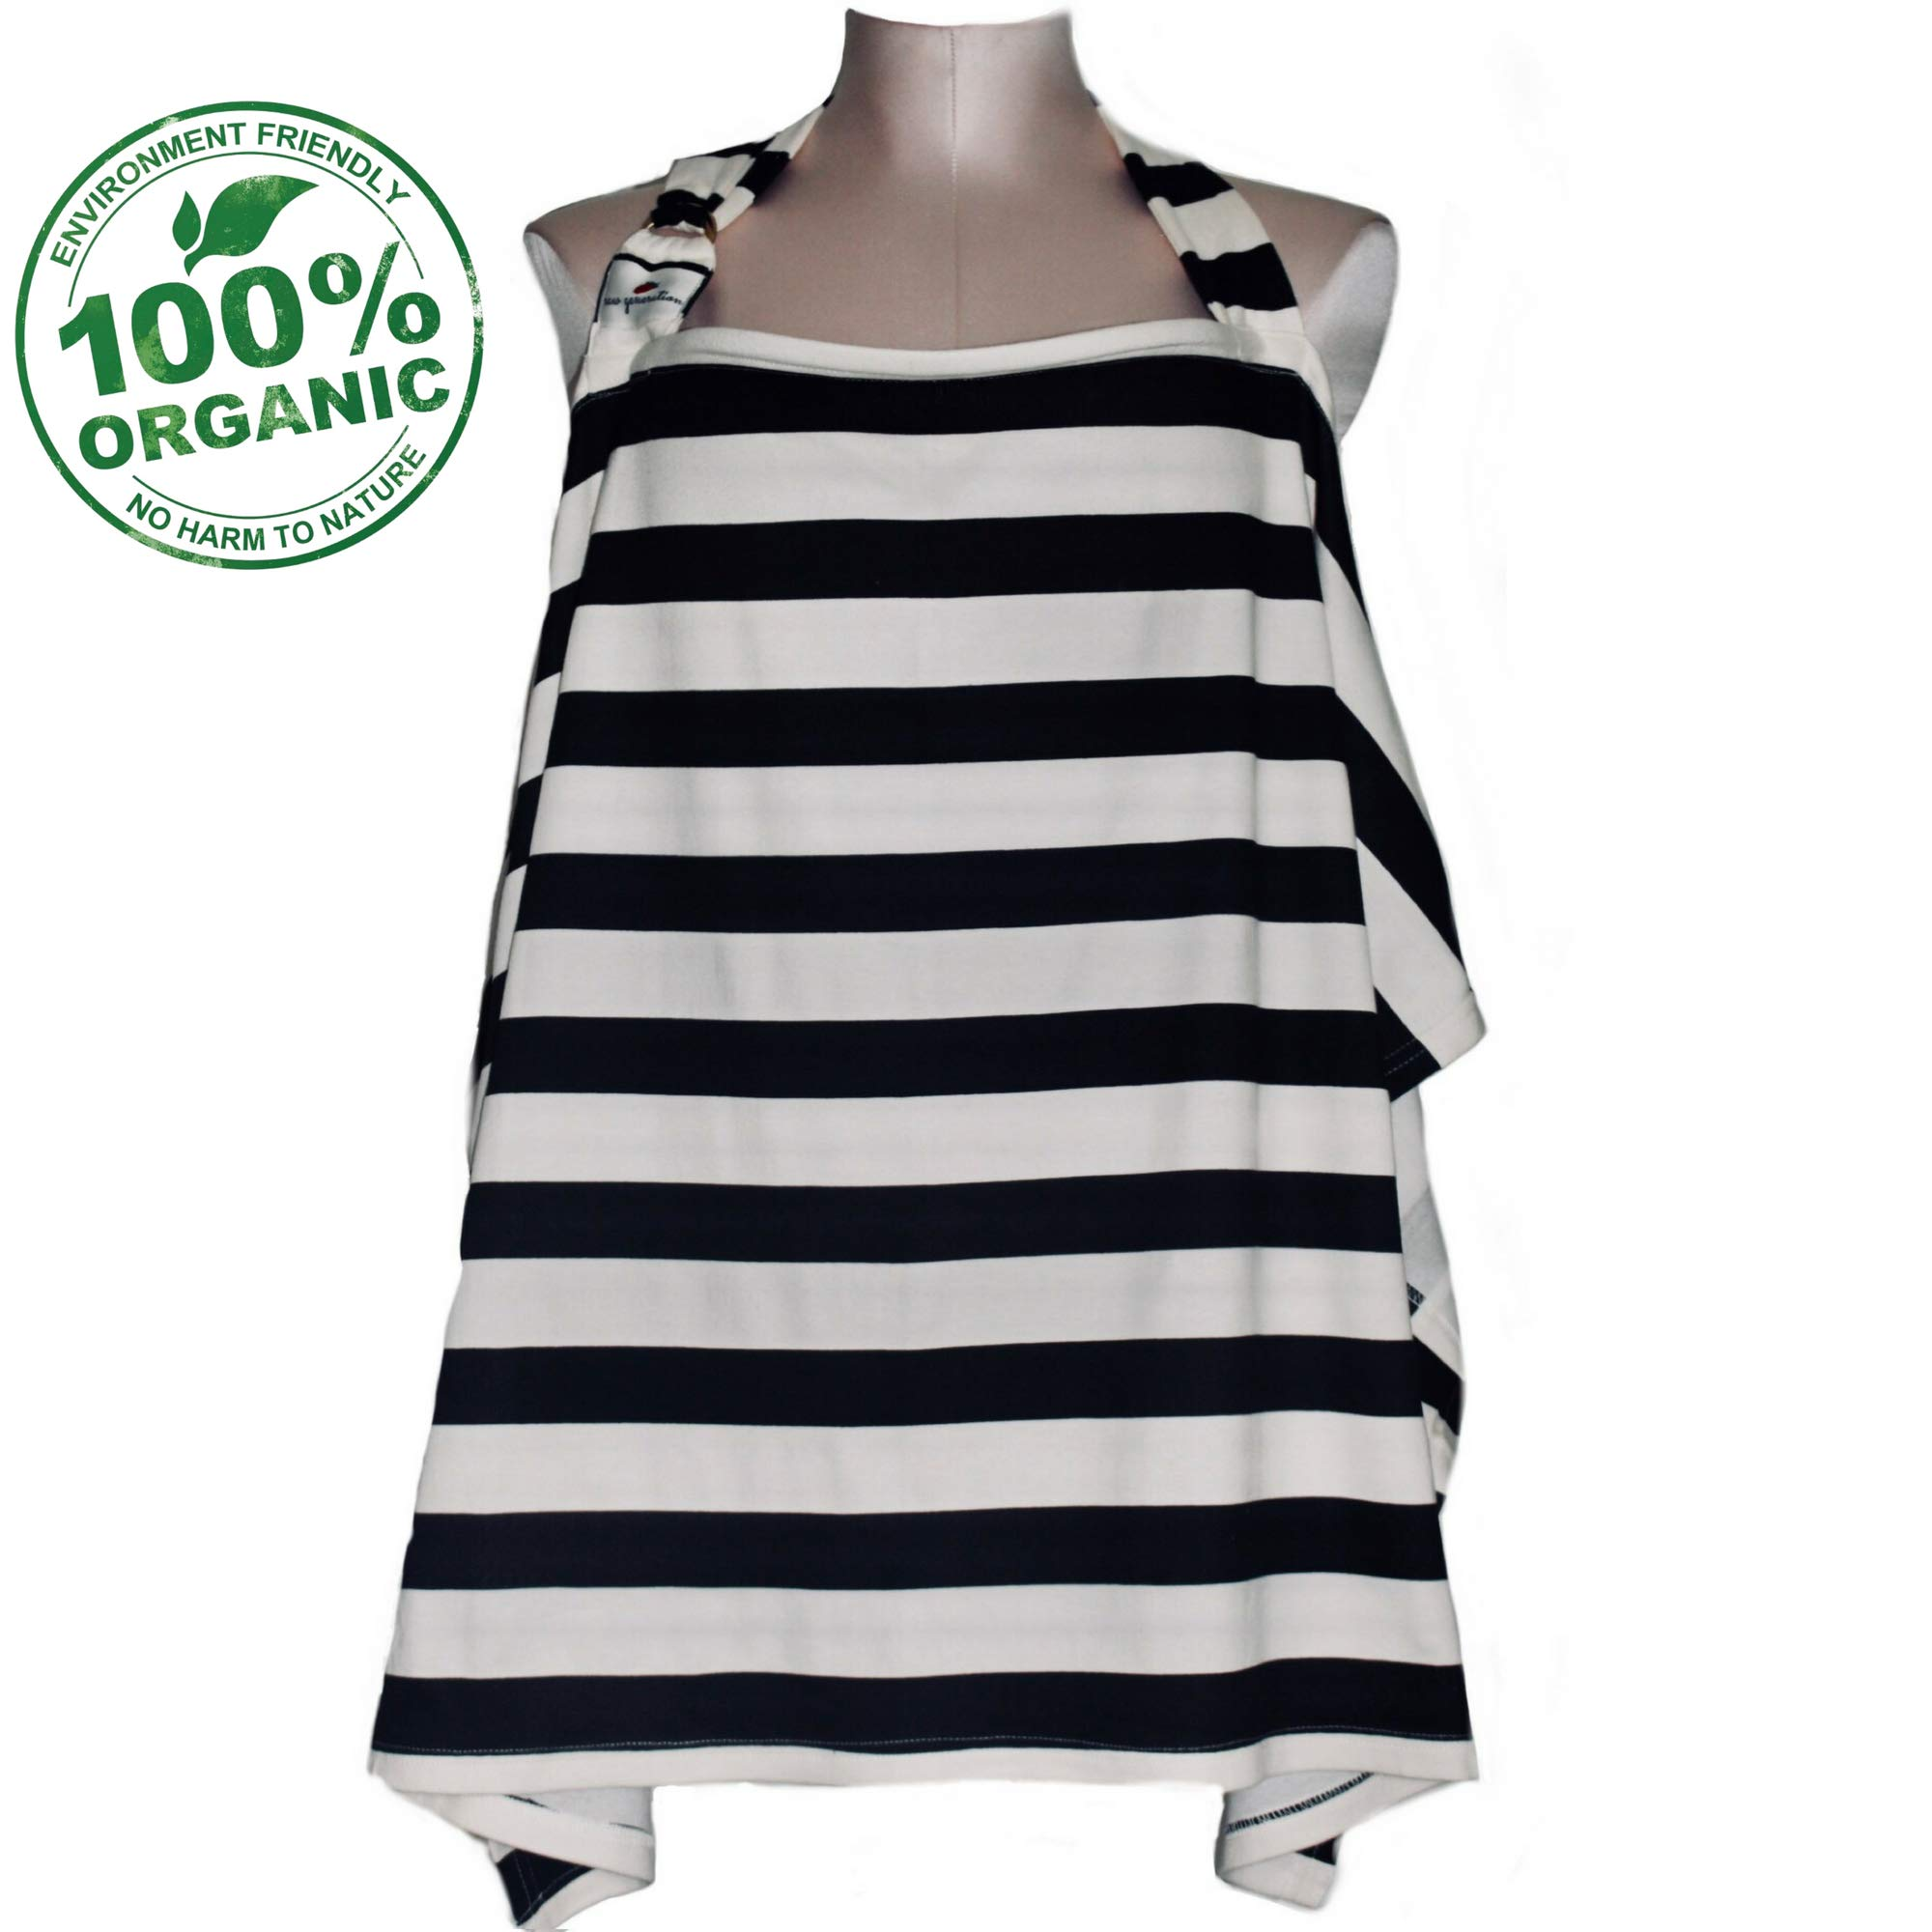 Raw Generation Nursing Cover | Multi-Use Breastfeeding Cover | Nursing Cover for Breastfeeding Babies | 100% Organic Cotton with Wire Hoop | Chic Black & Cream Stripes| Free Pouch Bag| for Boy & Girl